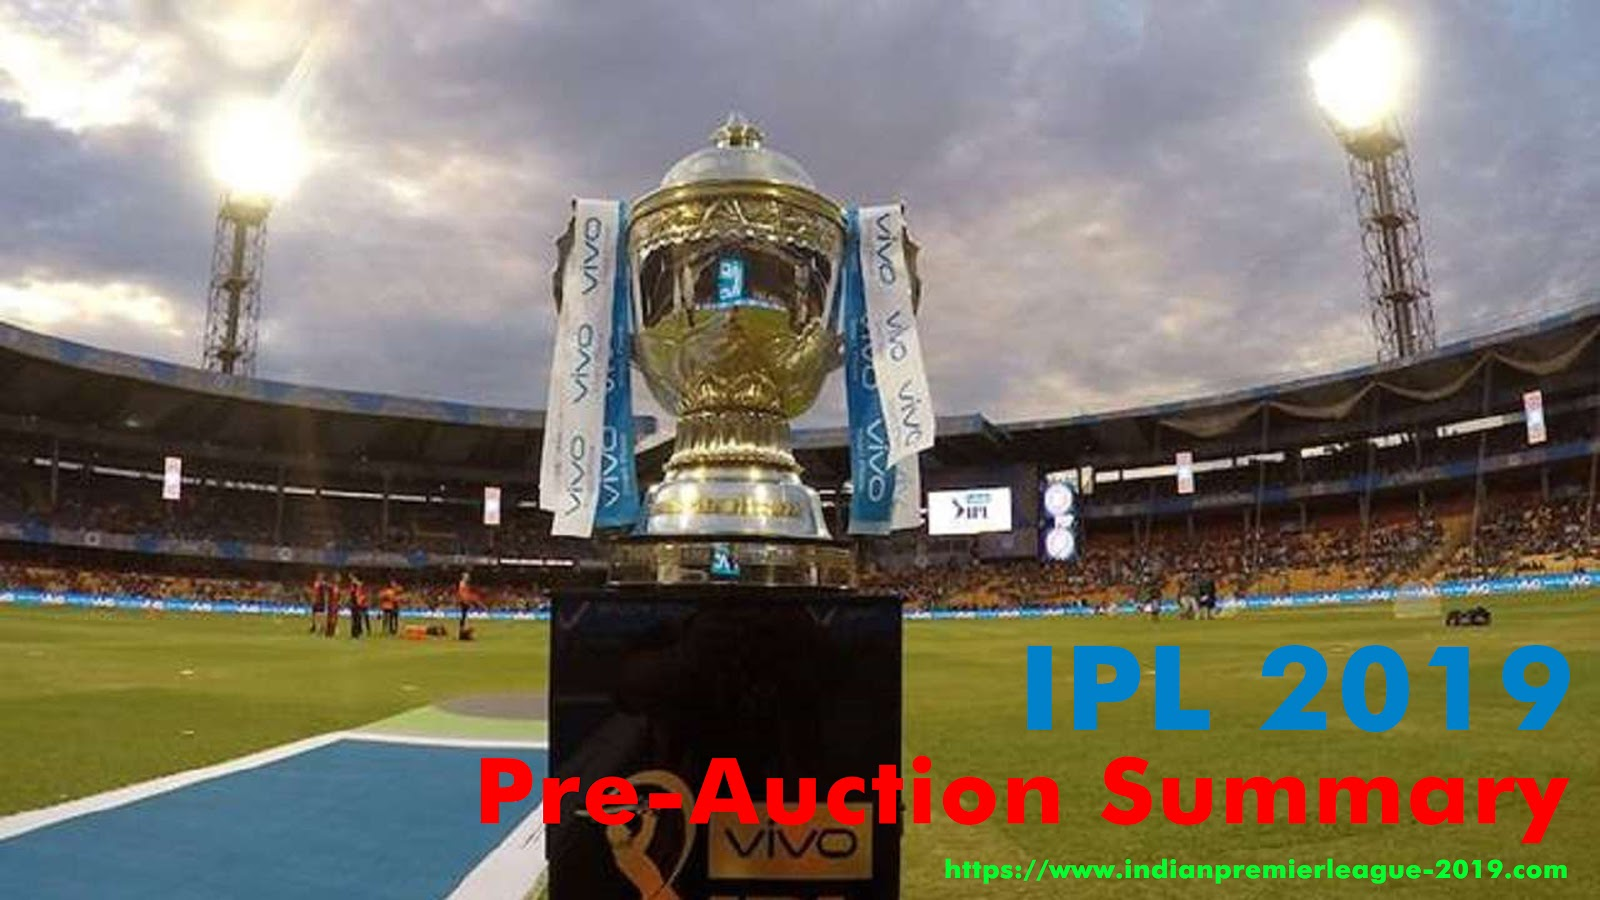 INDIAN PREMIER LEAGUE 2019, IPL Auction 2019, IPL Auctions 2019, IPL Squad list 2019, Latest IPL News 2019